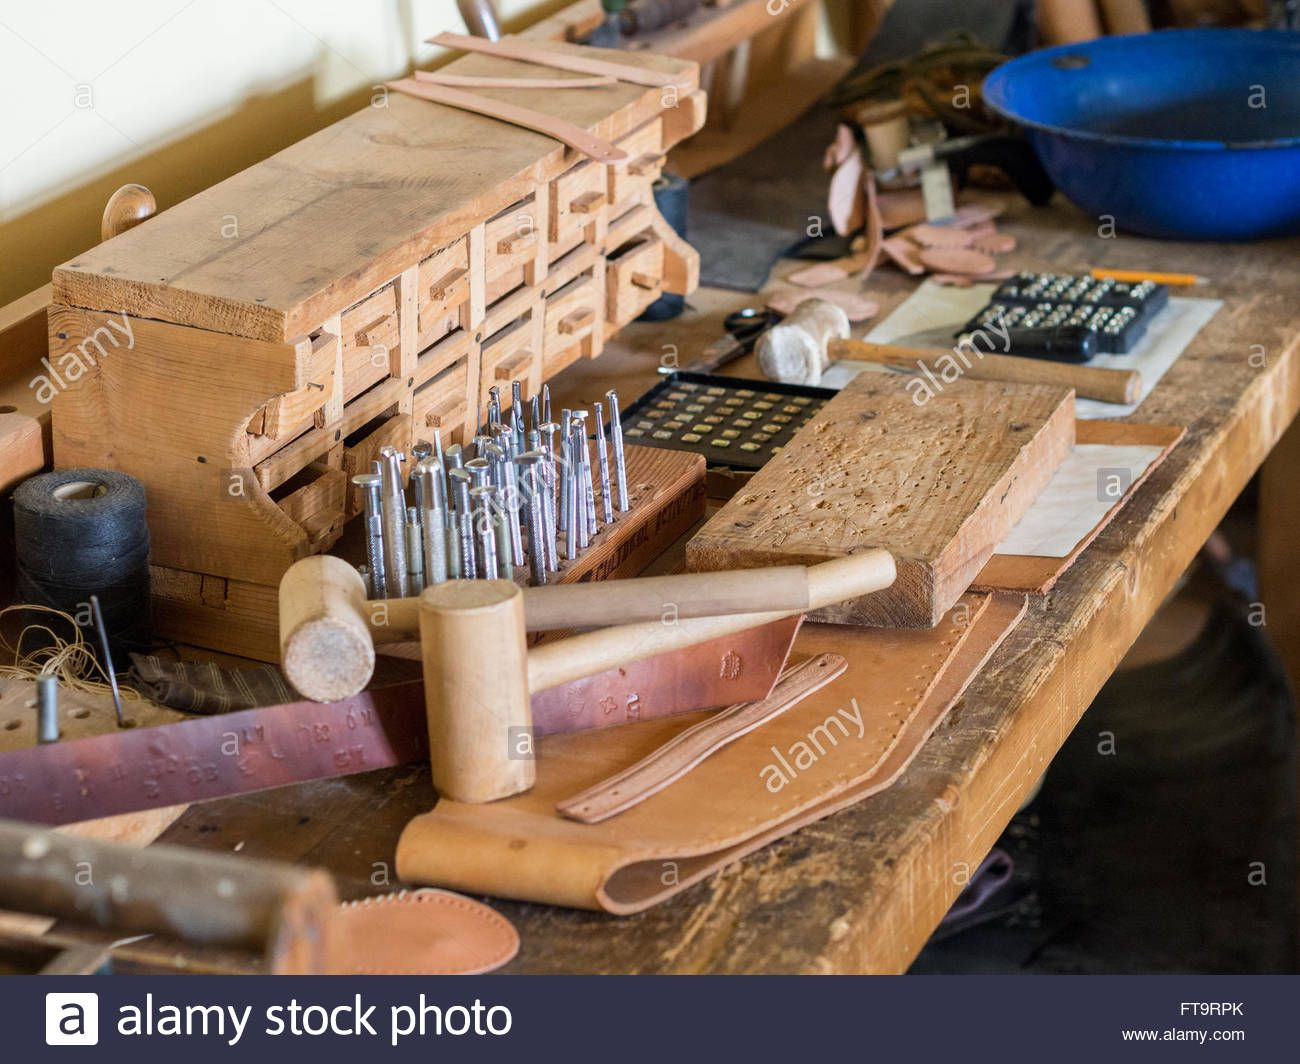 Download This Stock Image Cobbler S Workbench A Wooden